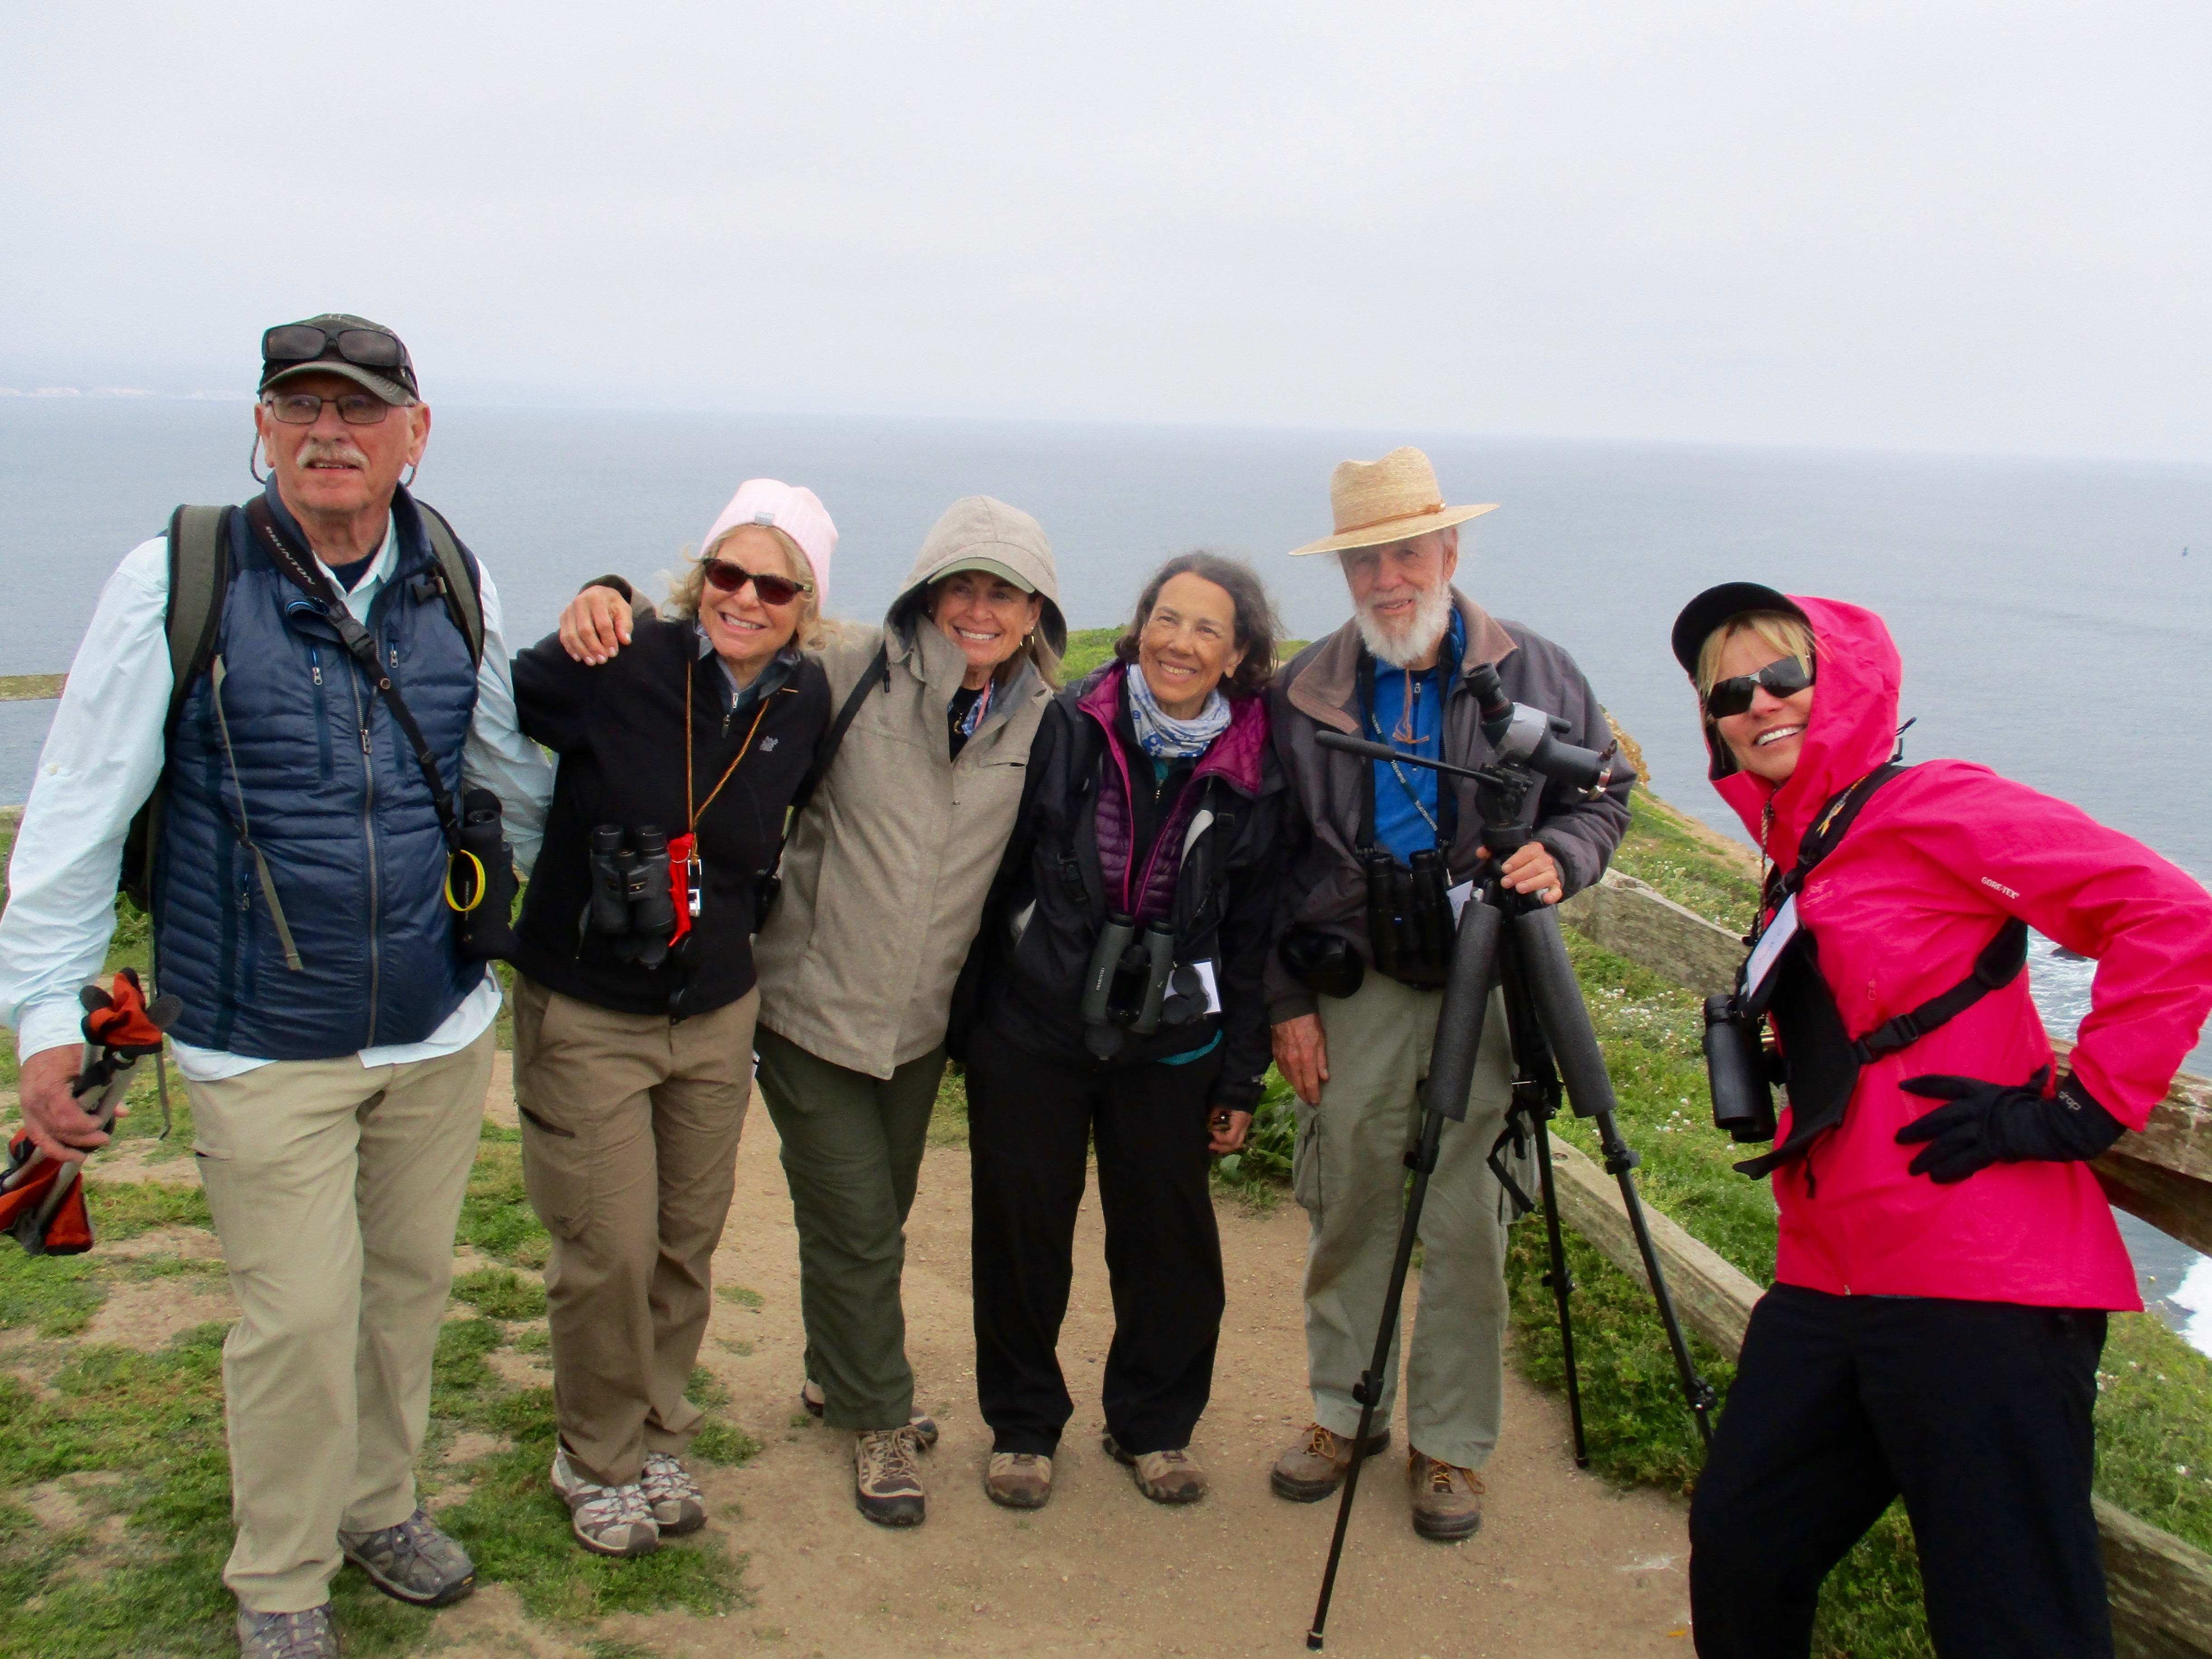 The Valley Vixens, my nature study group, flew to California for a long week-end of whales, wildflowers and birds. - with our guides at Chimney Rock, Point Reyes National Seashore